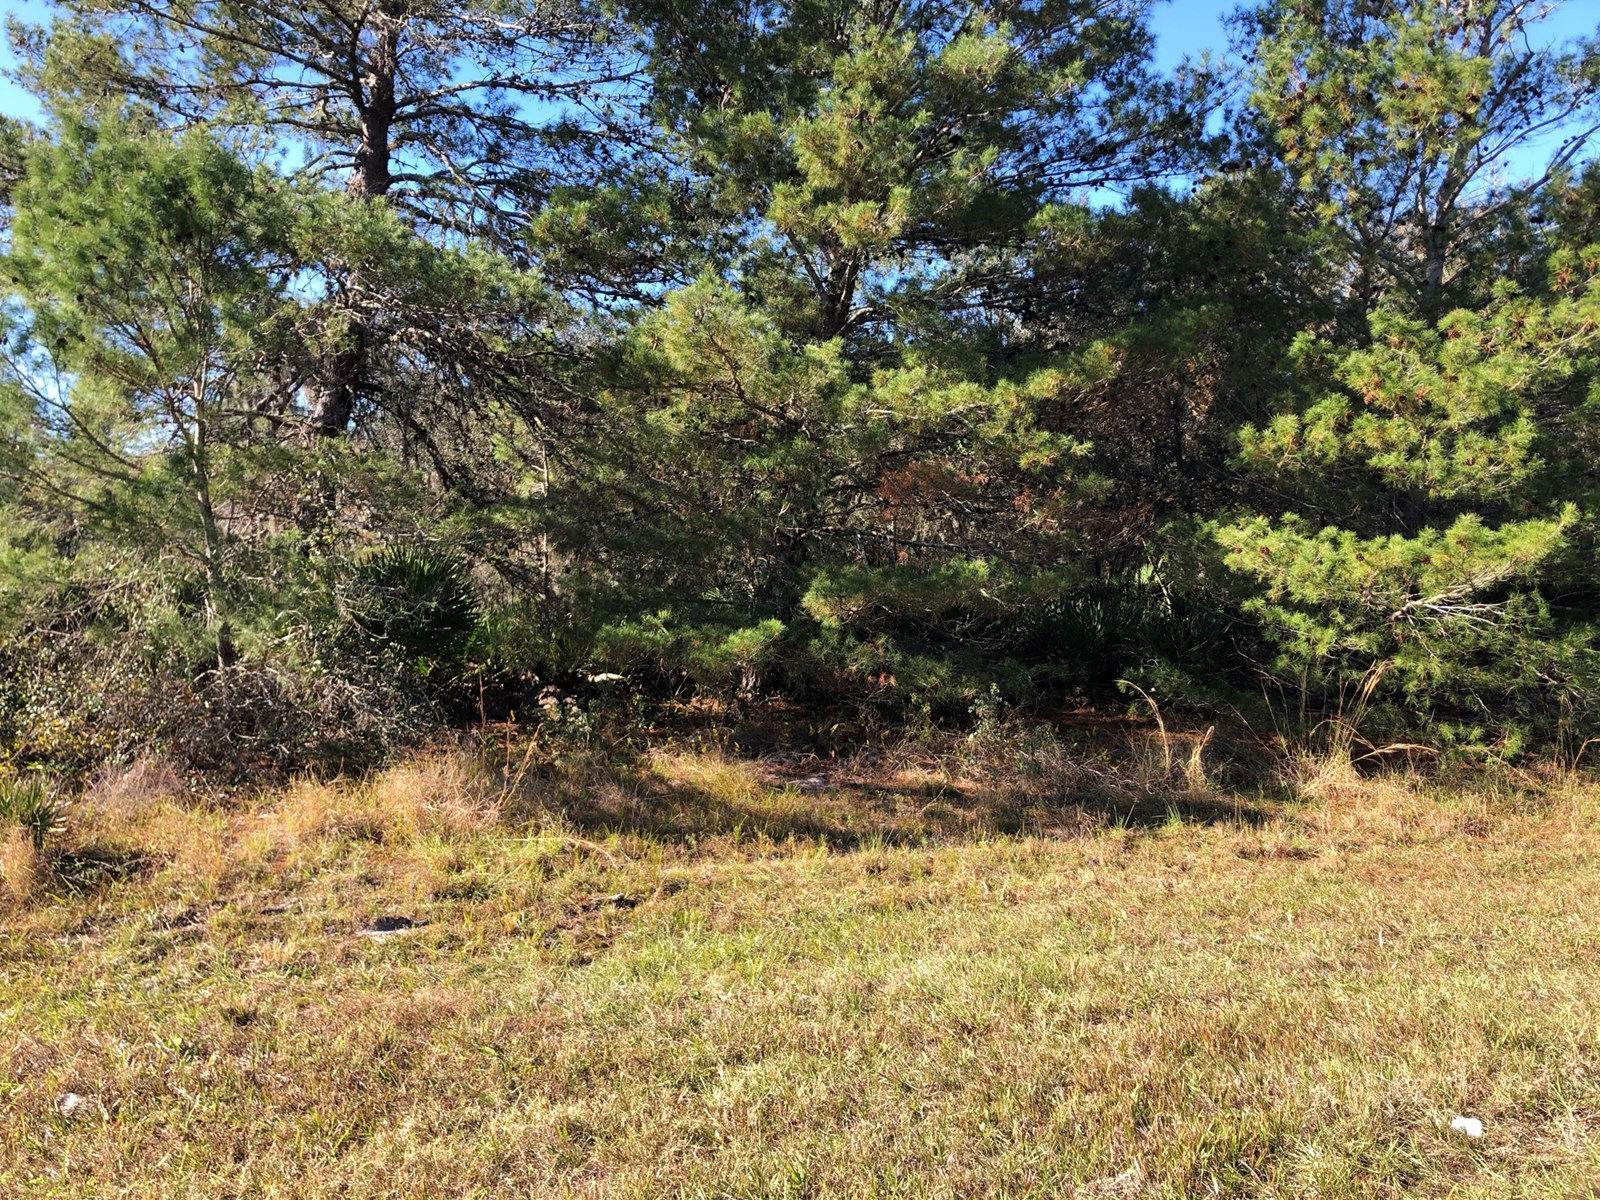 1 ACRE VACANT TRACT, NO HOA, CENTRAL FLORIDA, FROSTPROOF